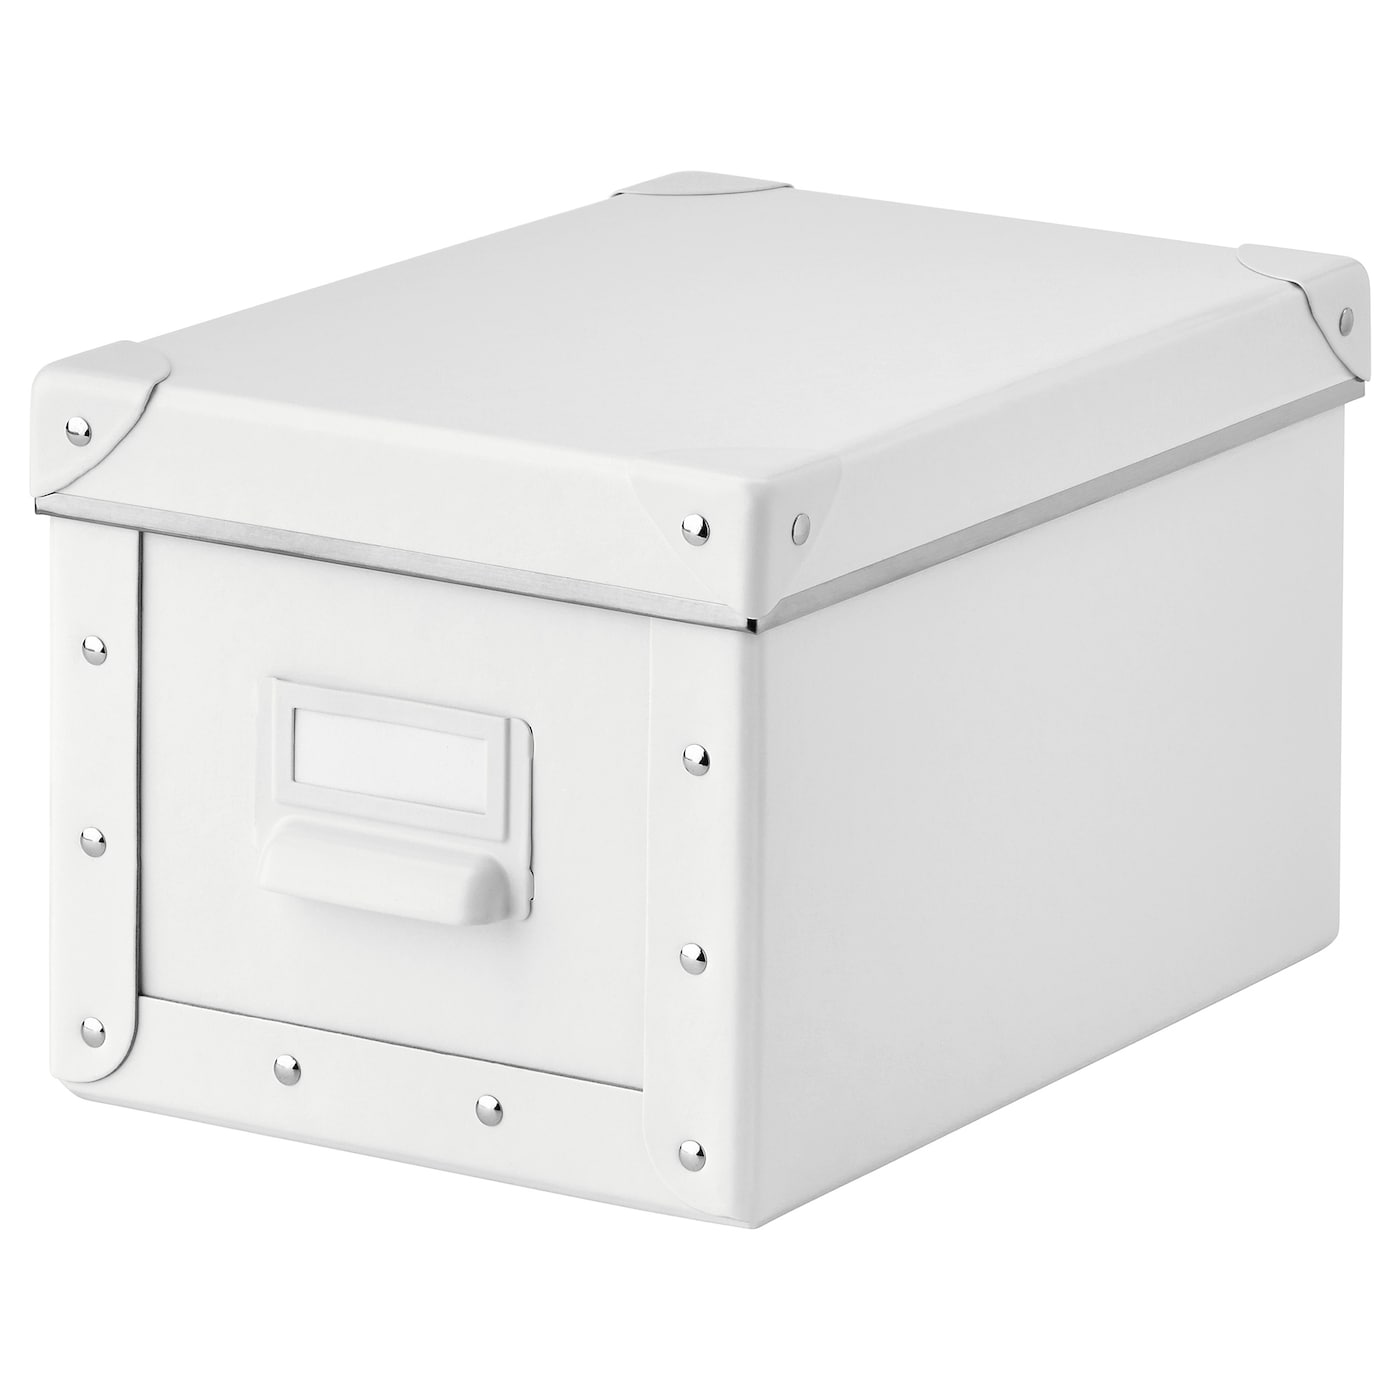 IKEA FJÄLLA storage box with lid